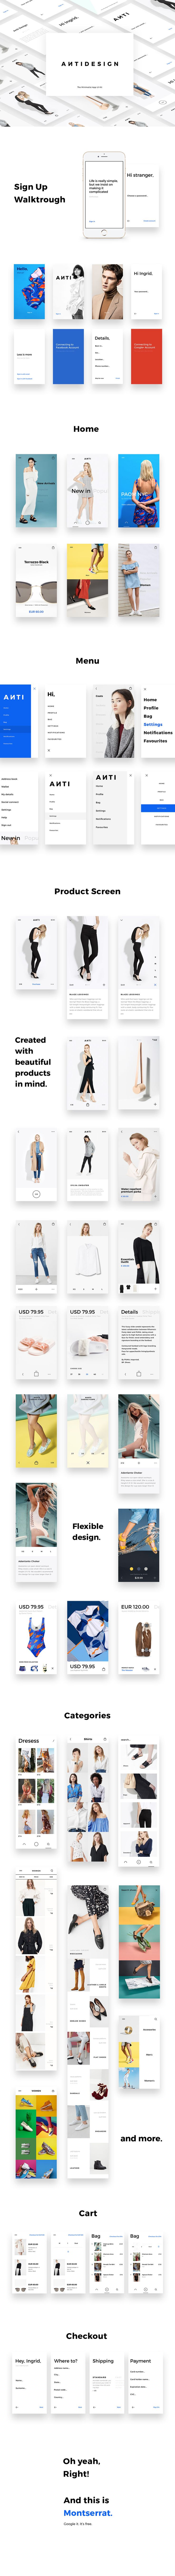 ANTIDESIGN - The Minimalist e-commerce UI Kit on Behance